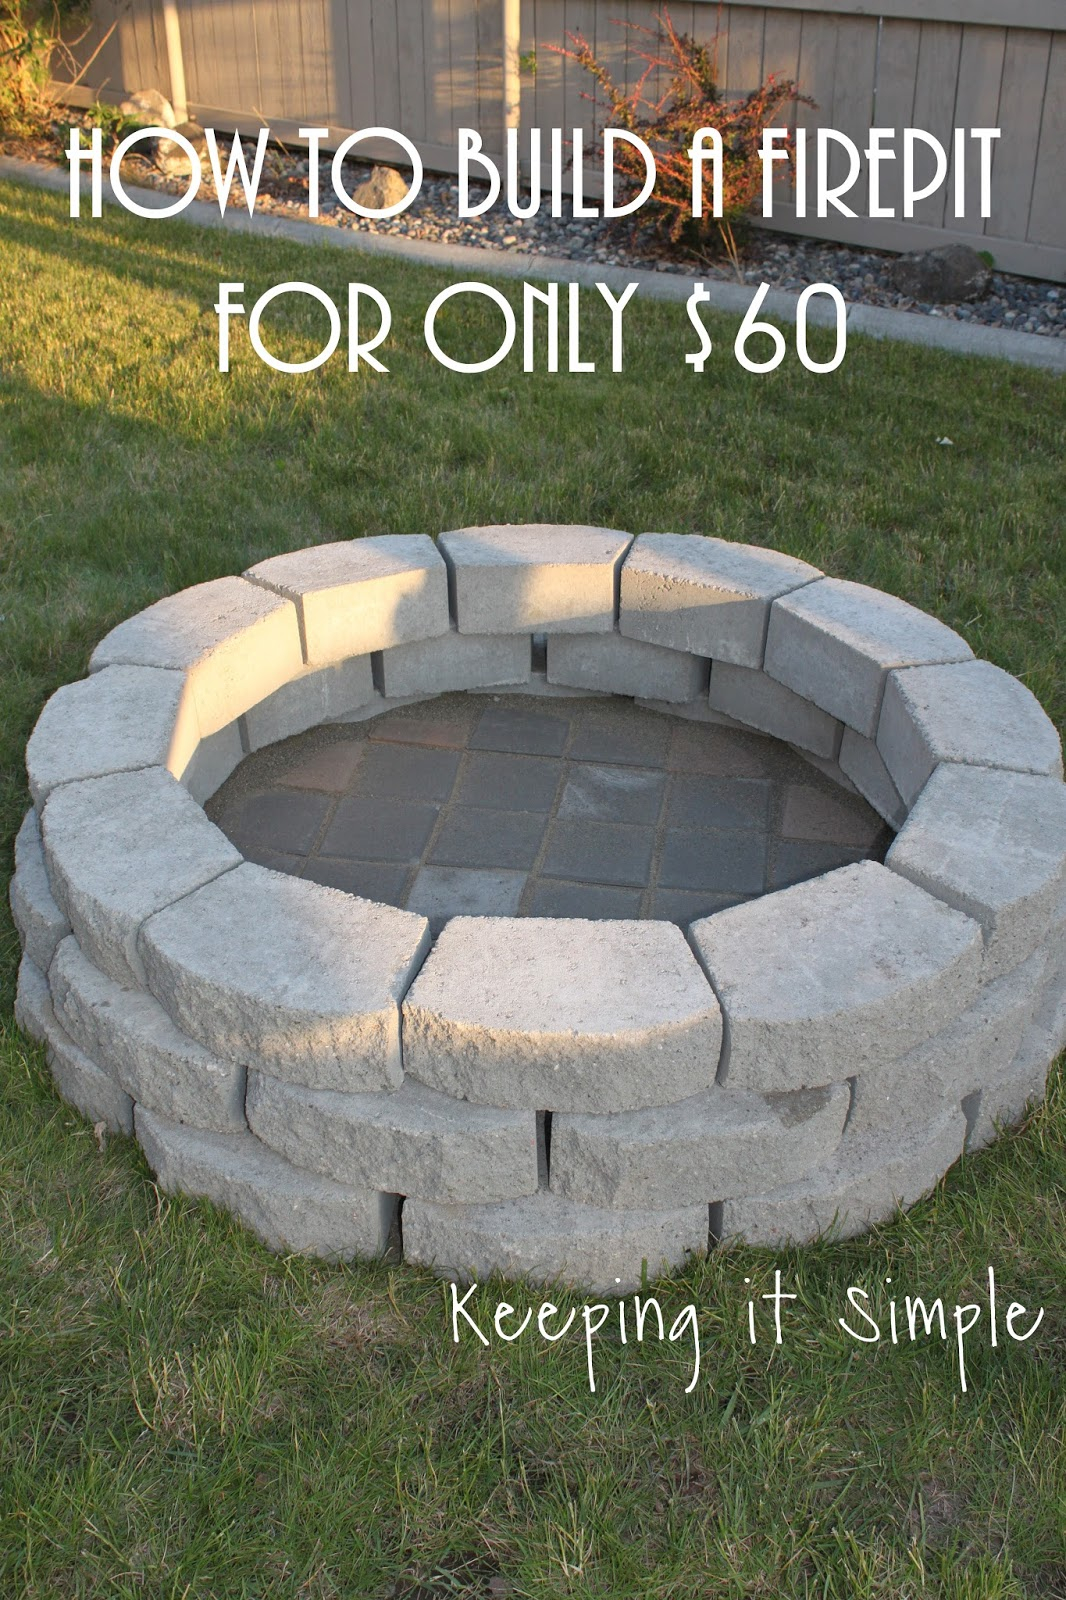 How To Build A Diy Fire Pit For Only 60 Keeping It Simple throughout 10 Clever Designs of How to Craft Diy Backyard Fire Pit Ideas